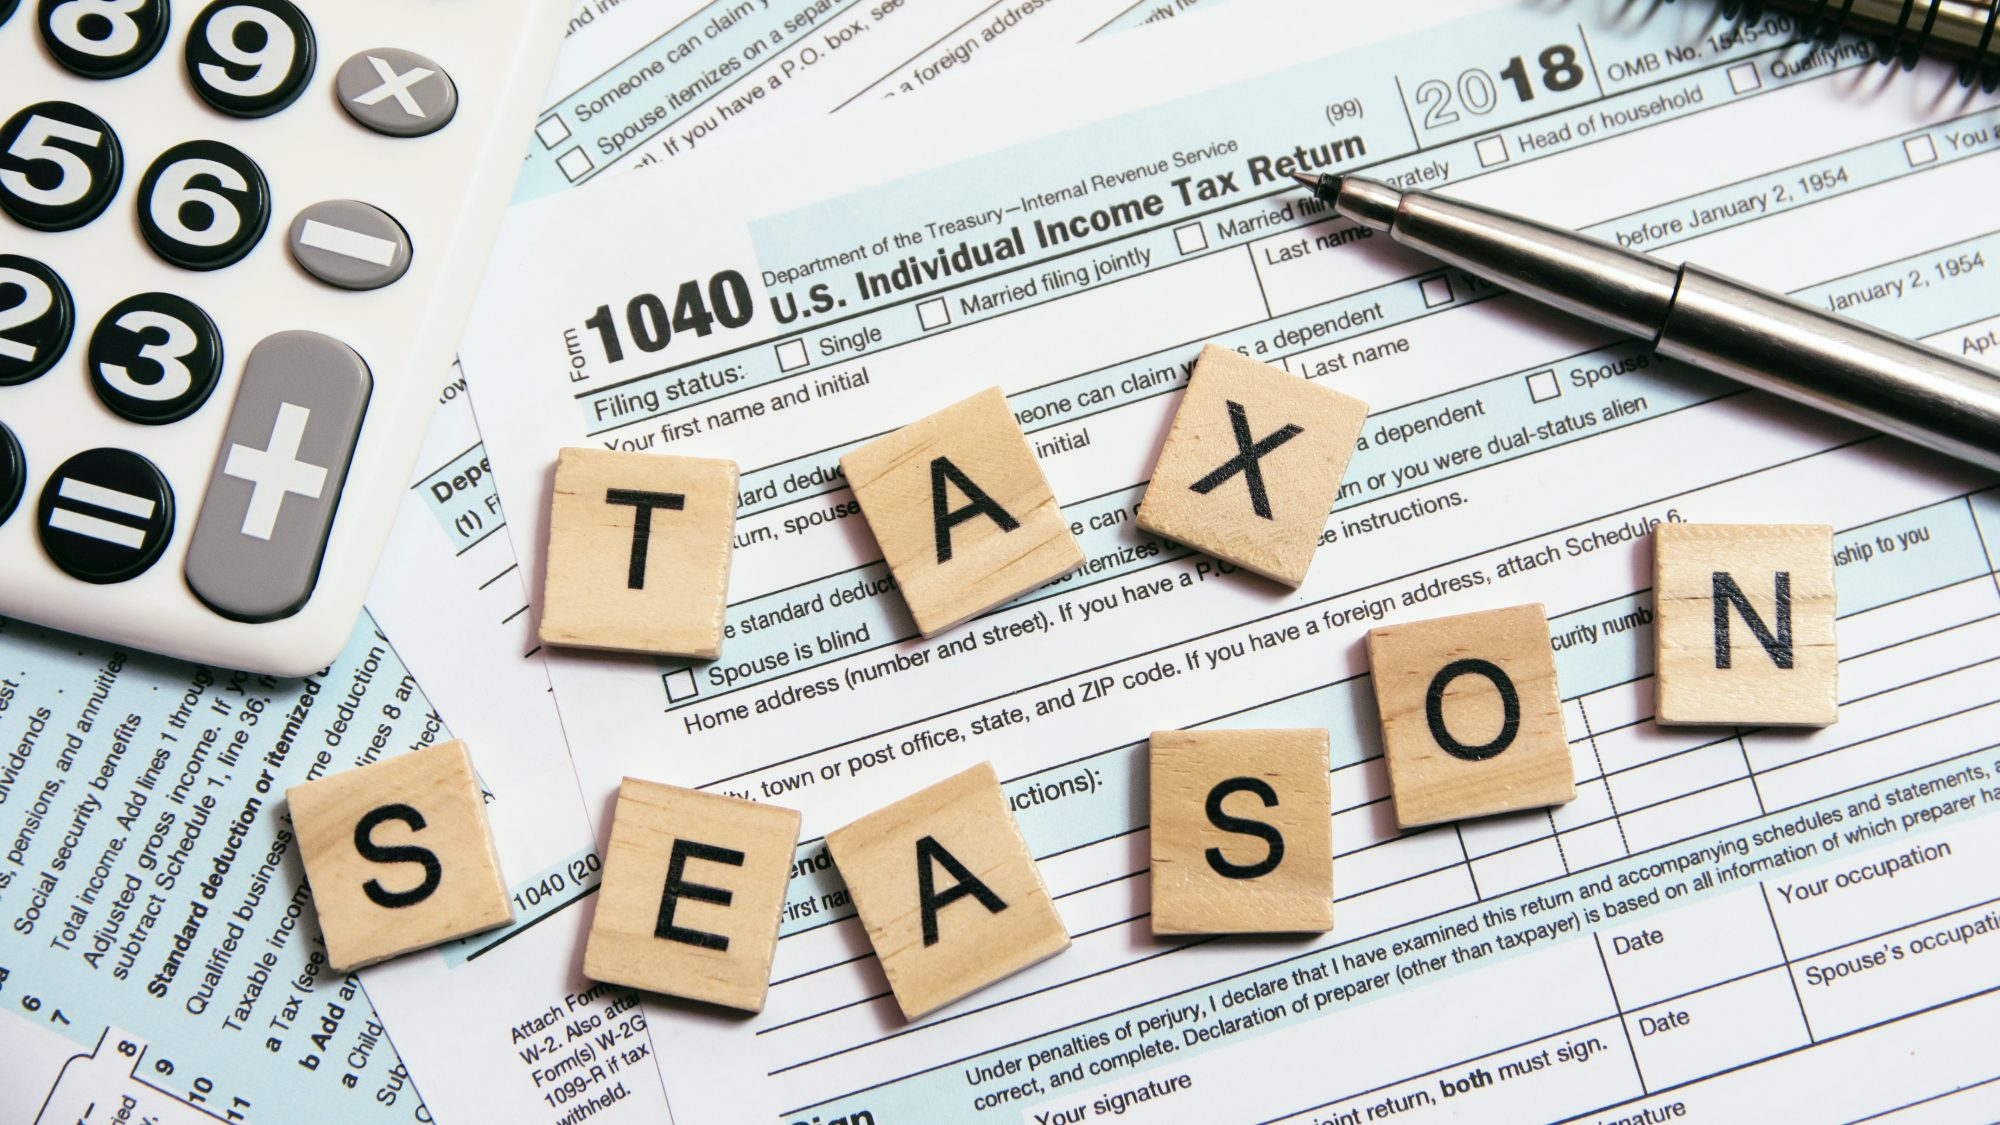 Tax season 2021 - tax season start date, Tax Day date, and more